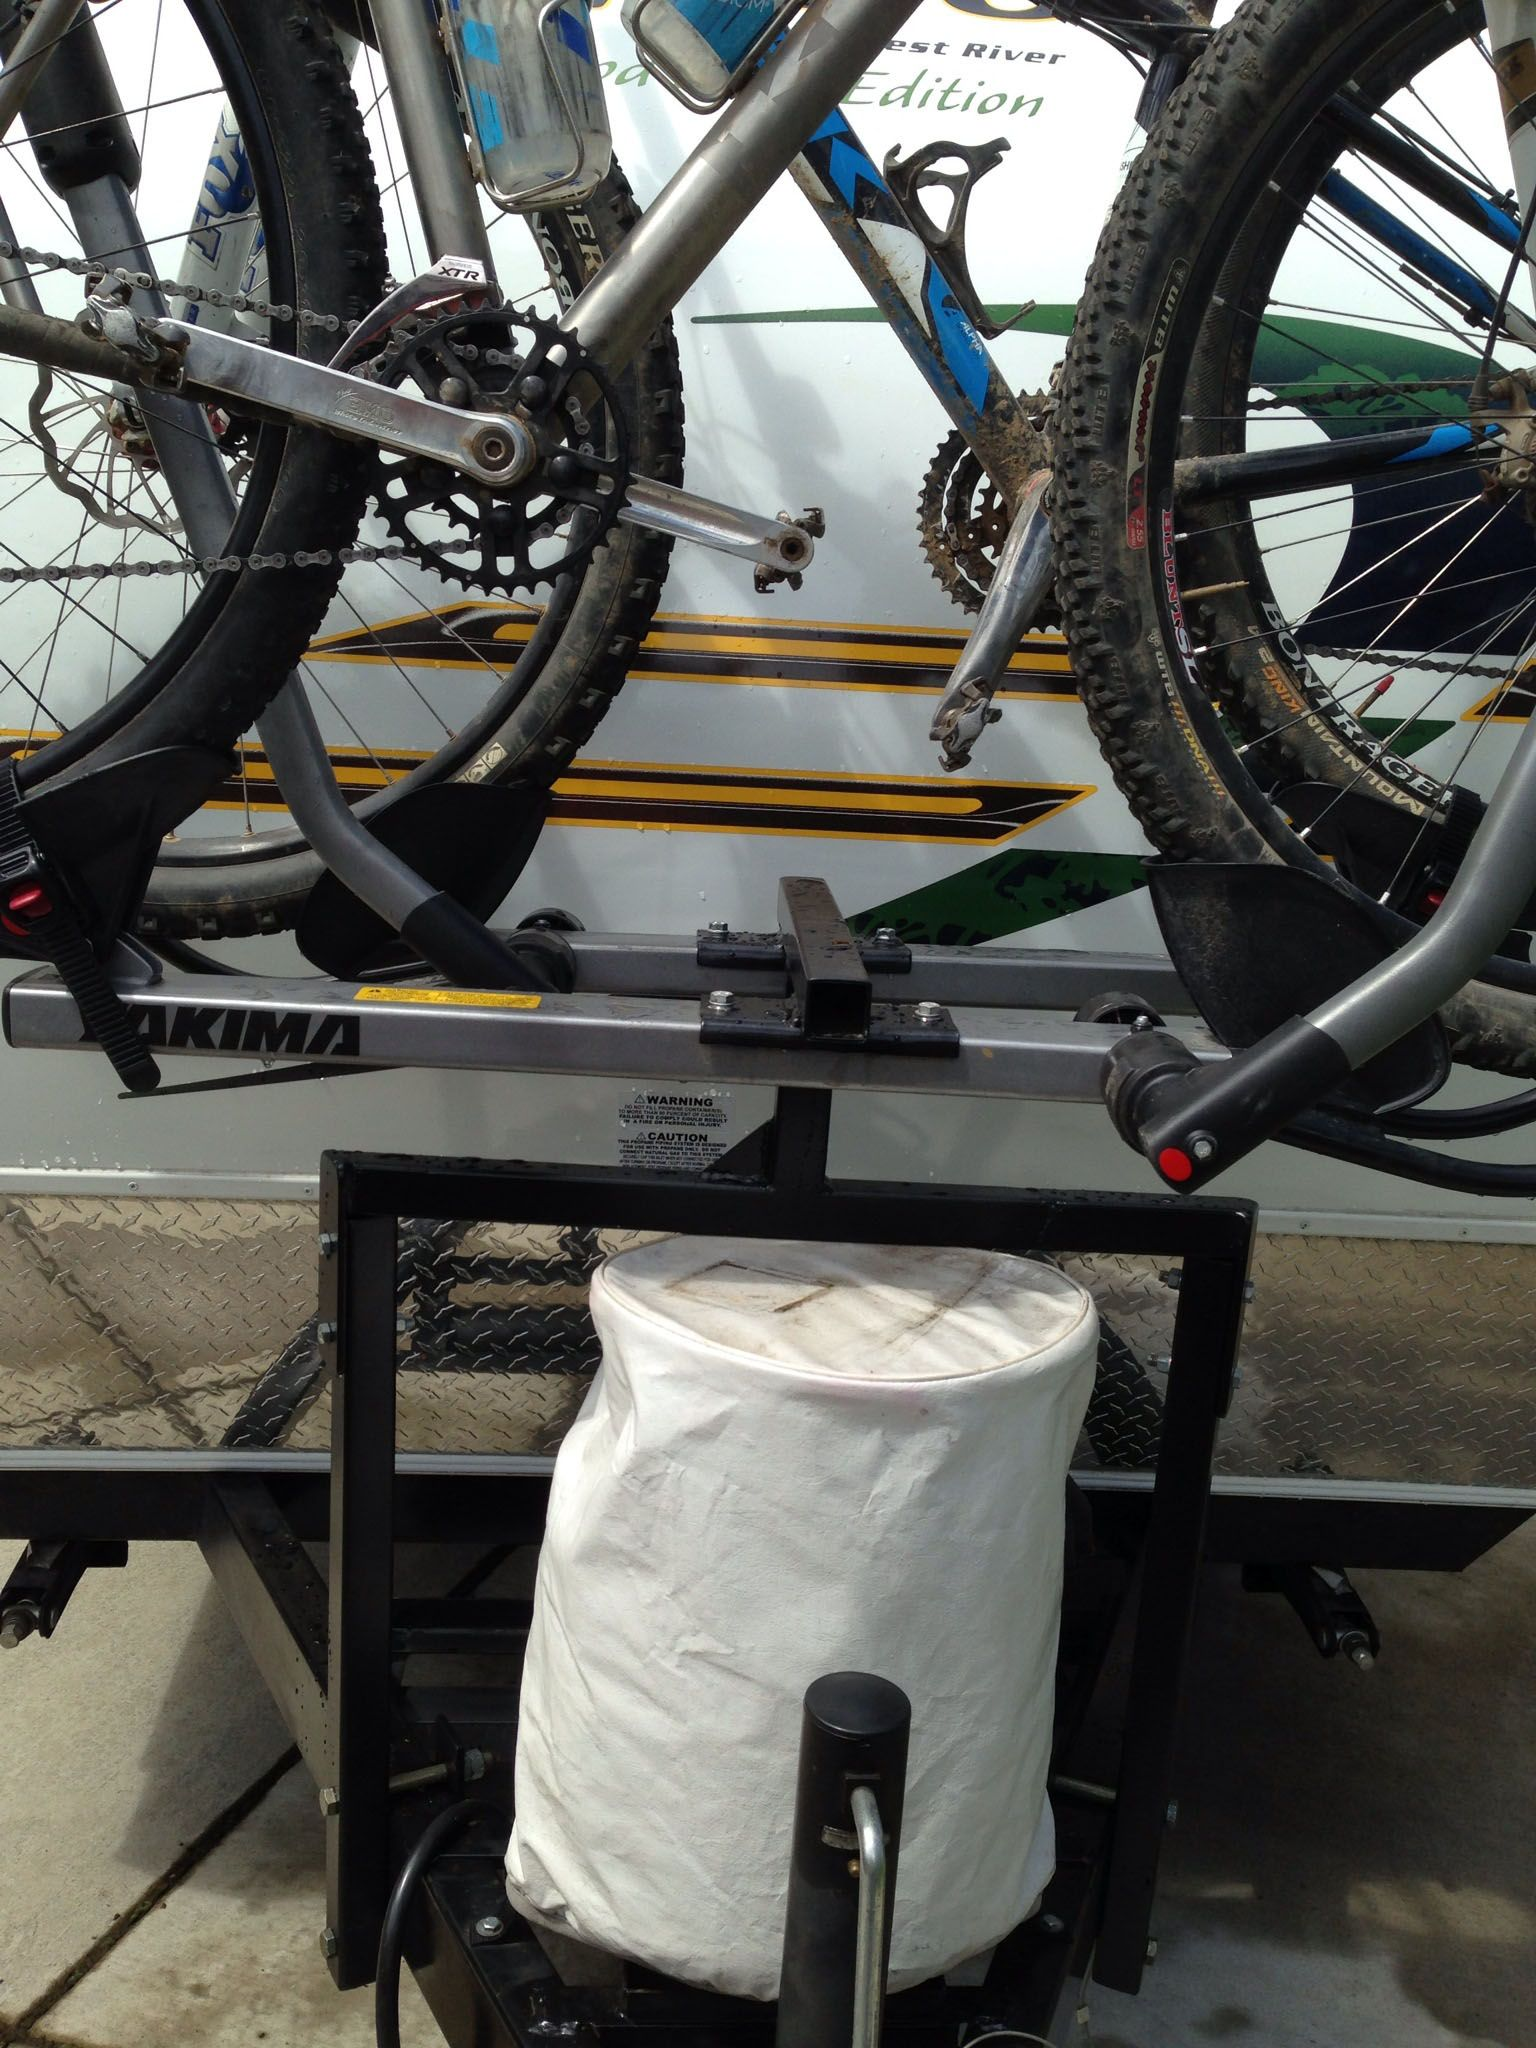 Trailer Tongue Bicycle Rack Bike rack, Bicycle rack, Rv